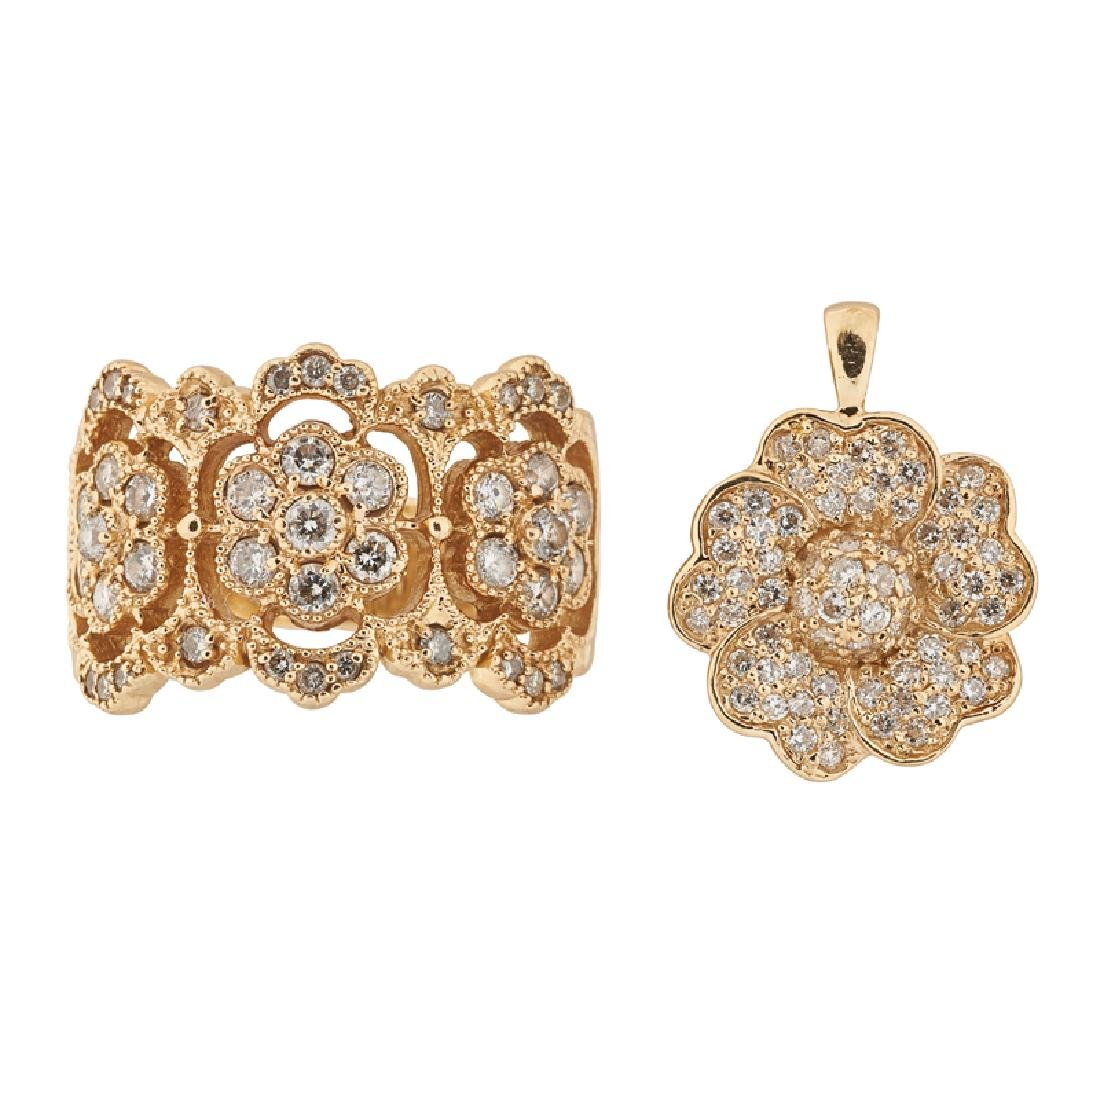 DIAMOND & YELLOW GOLD FLORAL RING & PENDANT SUITE